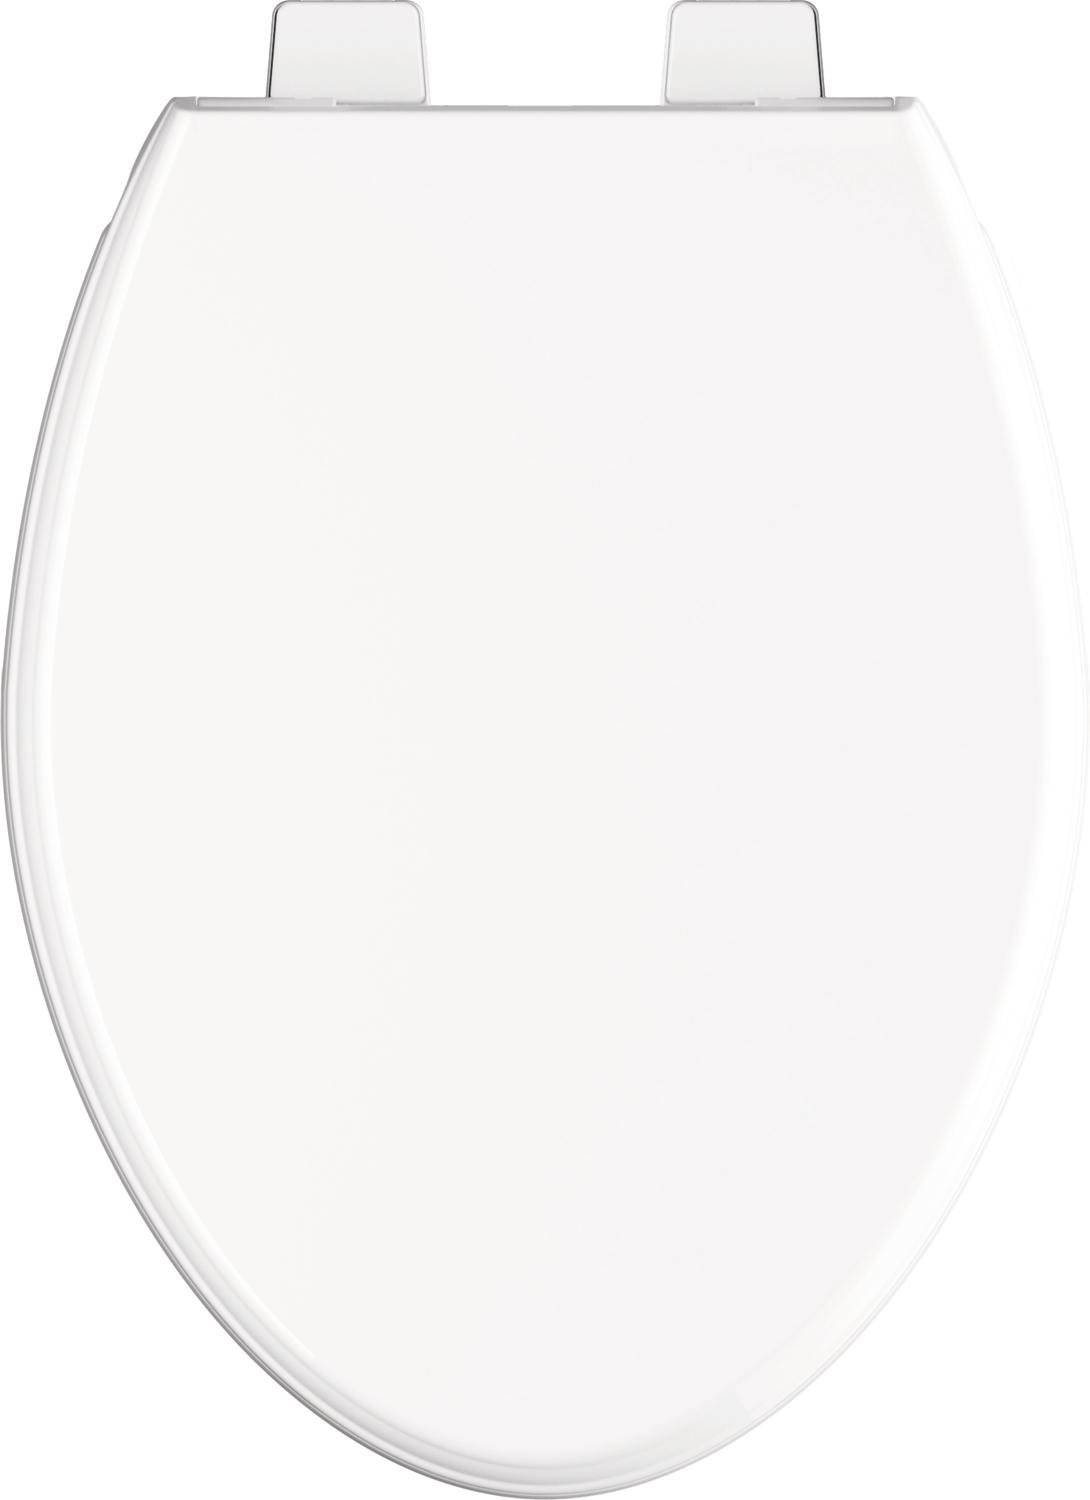 Delta Faucet 811901-WH Wycliffe Elongated Slow-Close Toilet Seat with Non-slip Seat Bumpers, White by DELTA FAUCET (Image #3)